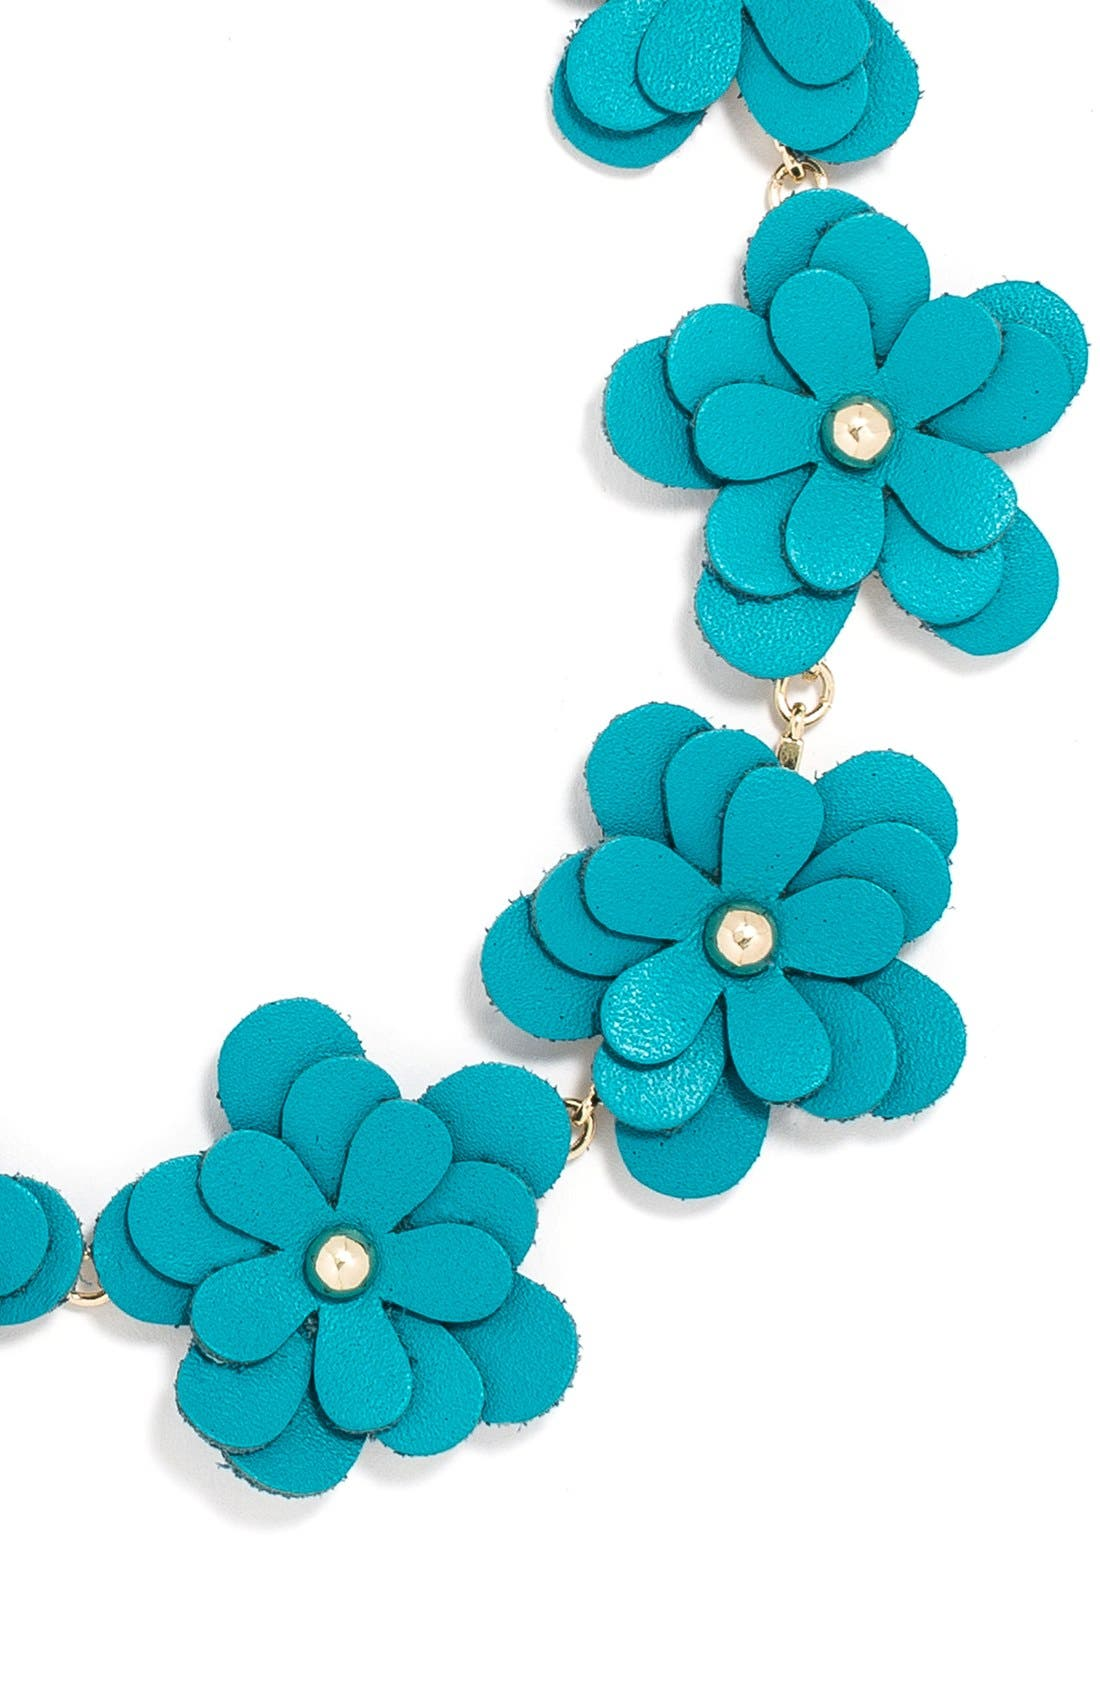 'Zoe' Leather Flower Collar Necklace,                             Alternate thumbnail 2, color,                             400